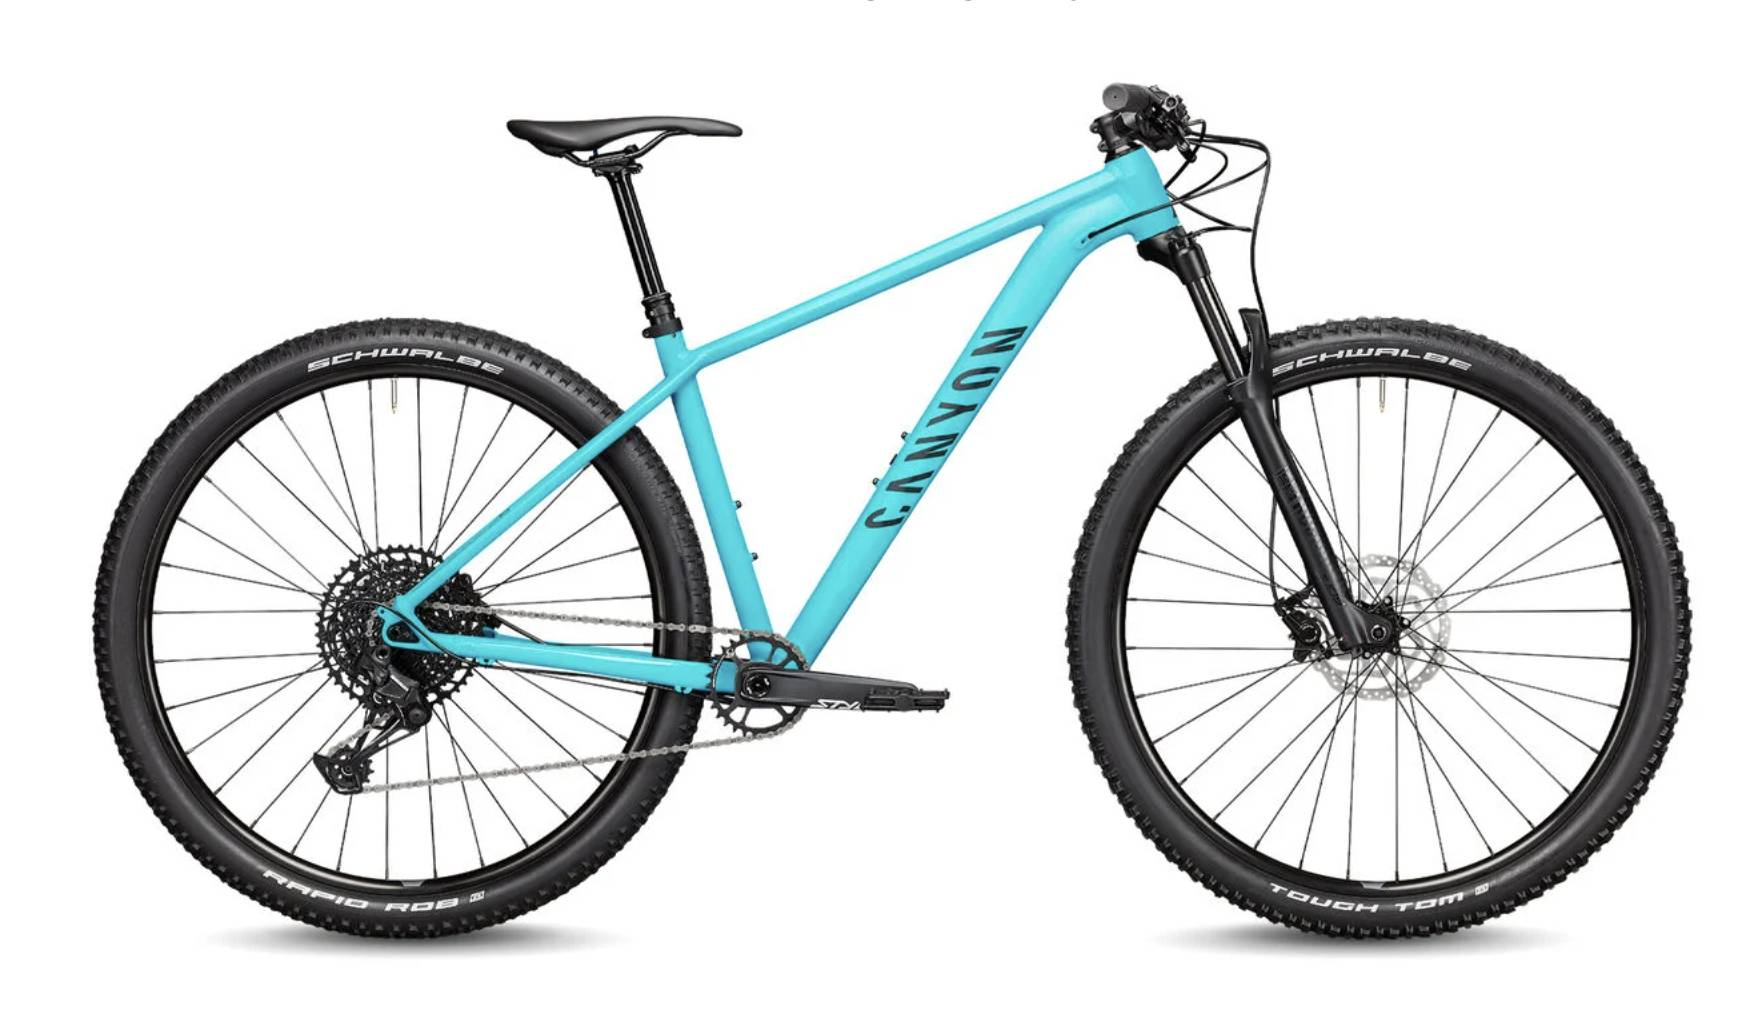 grand canyon 7 bike in bright teal blue